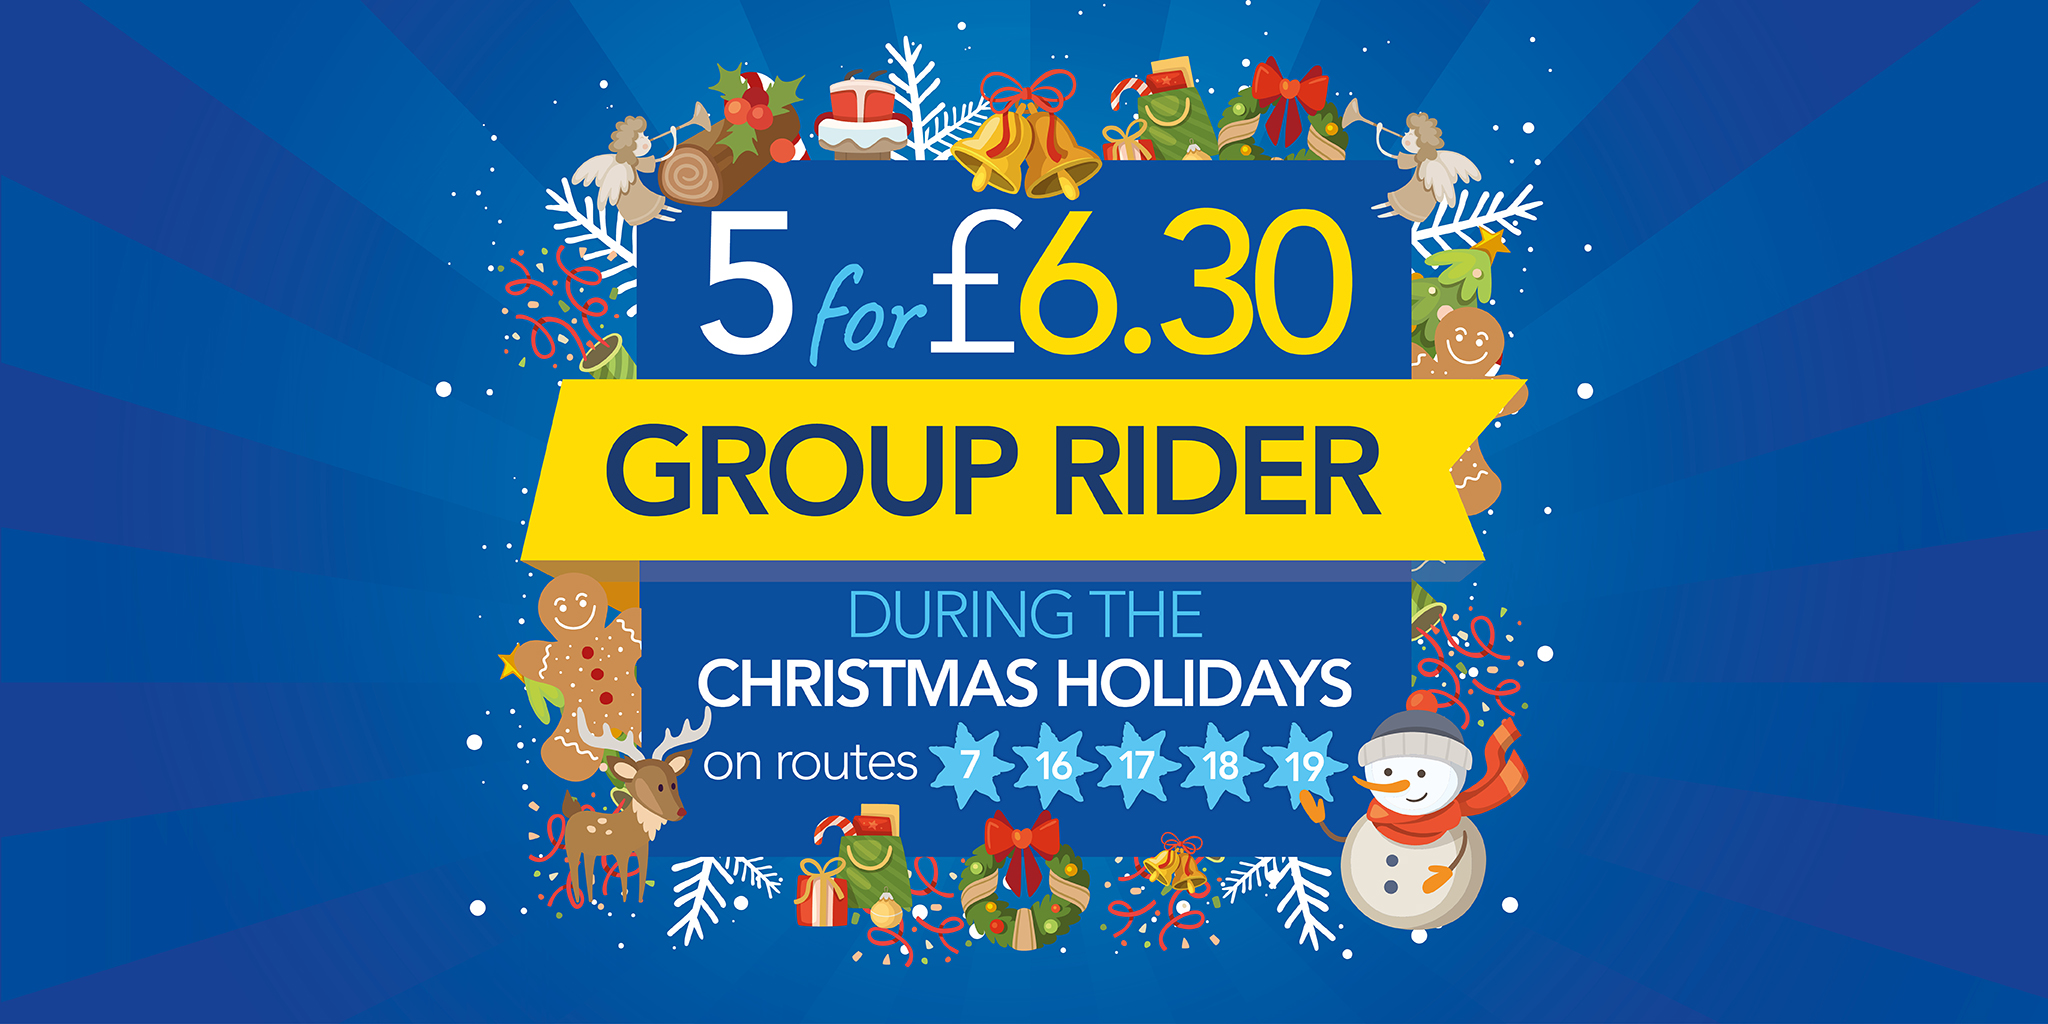 Holiday group rider back for Christmas